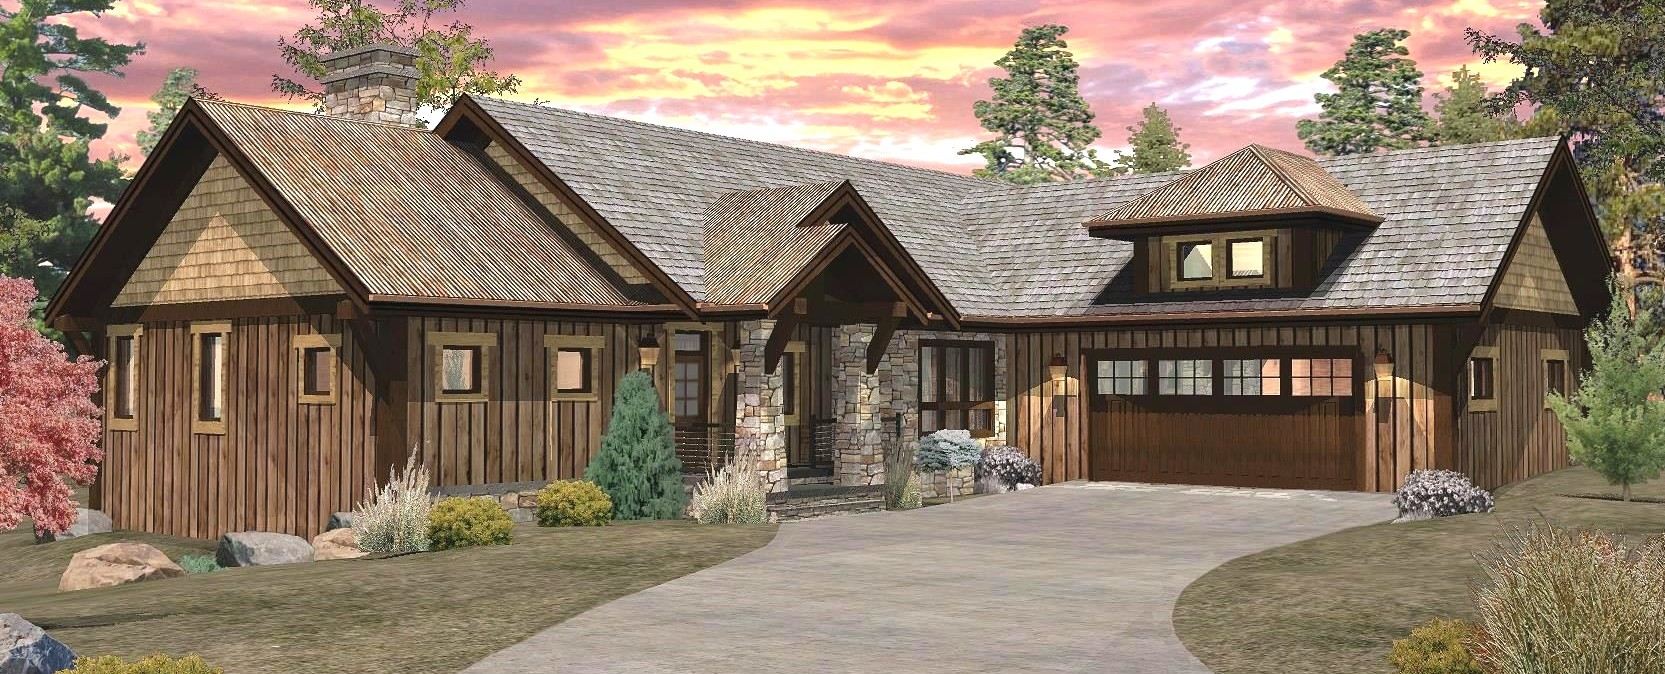 Pinecone - Front Rendering by Wisconsin Log Homes 1